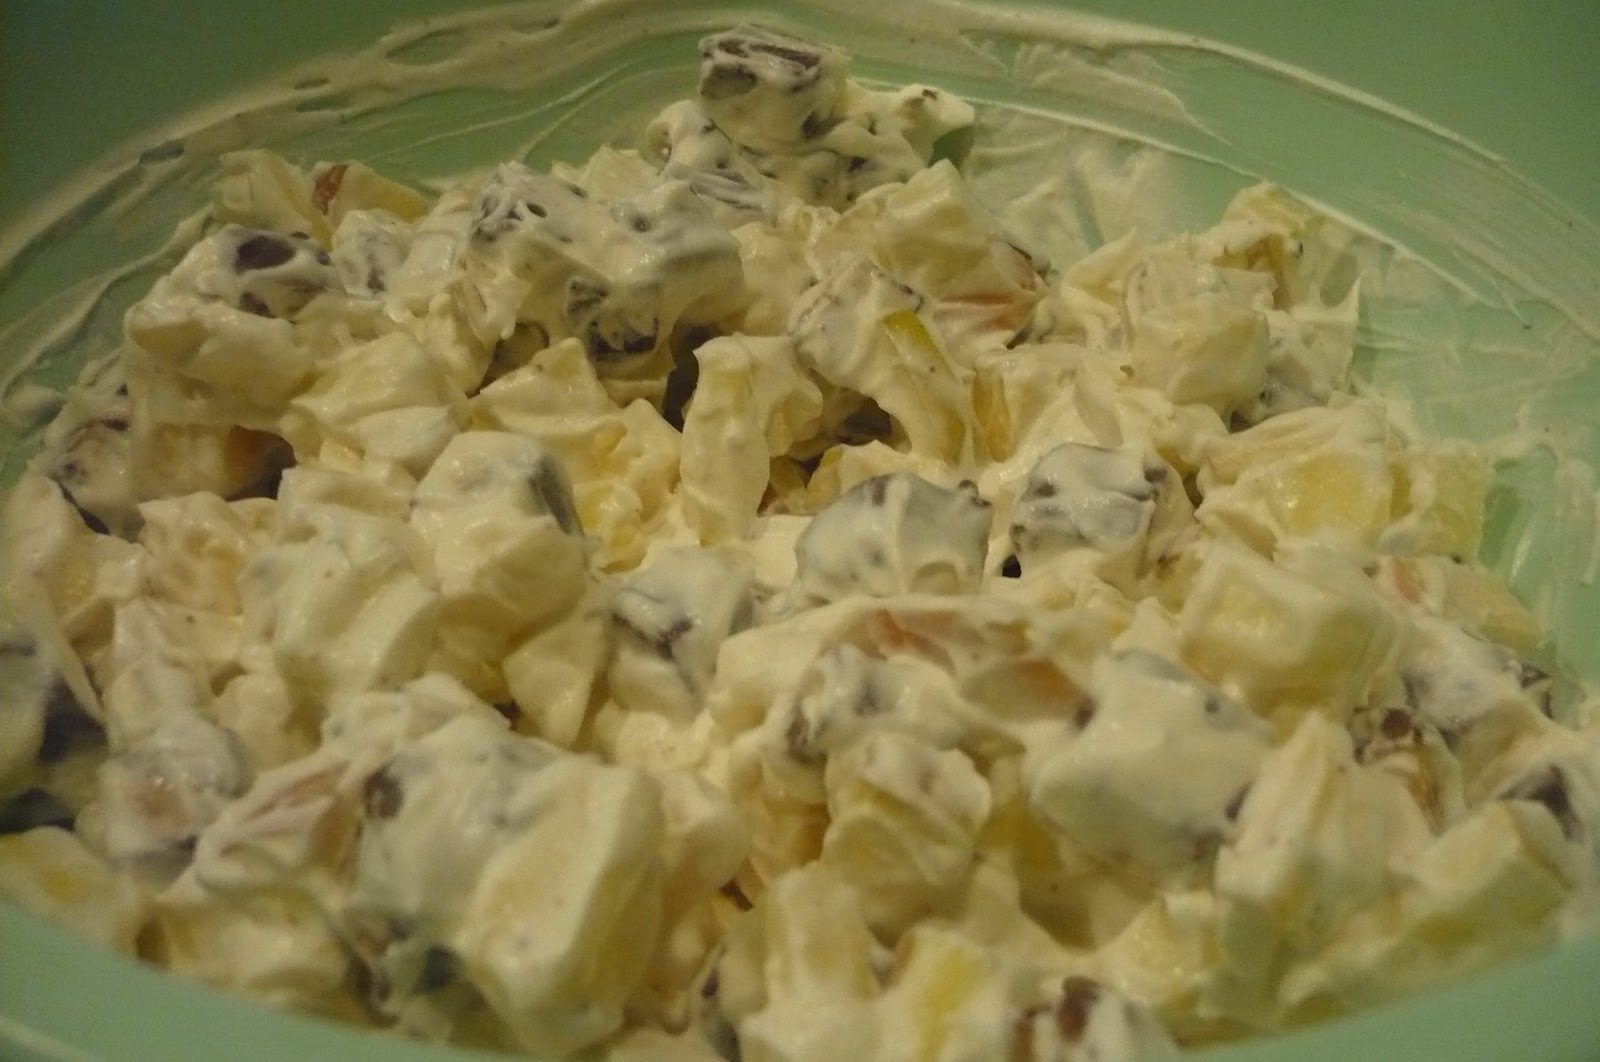 Queen Of Hearts: Chocolate Candy Bar Salad